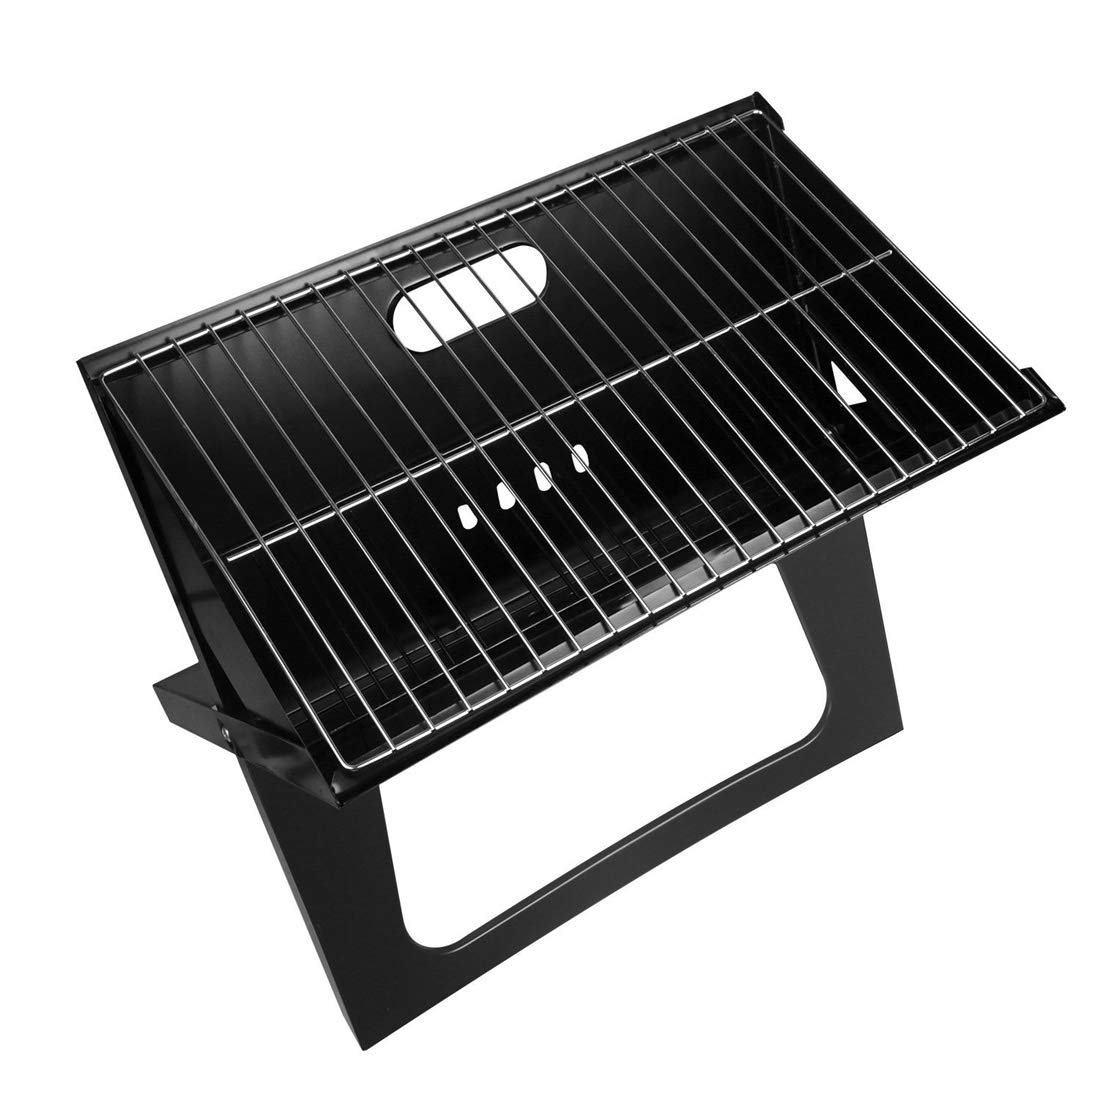 Pro-G Smoker BBQ Grill Portable Outdoor Camping Cooker Bars Compact Charcoal Barbecue 170 Square inches